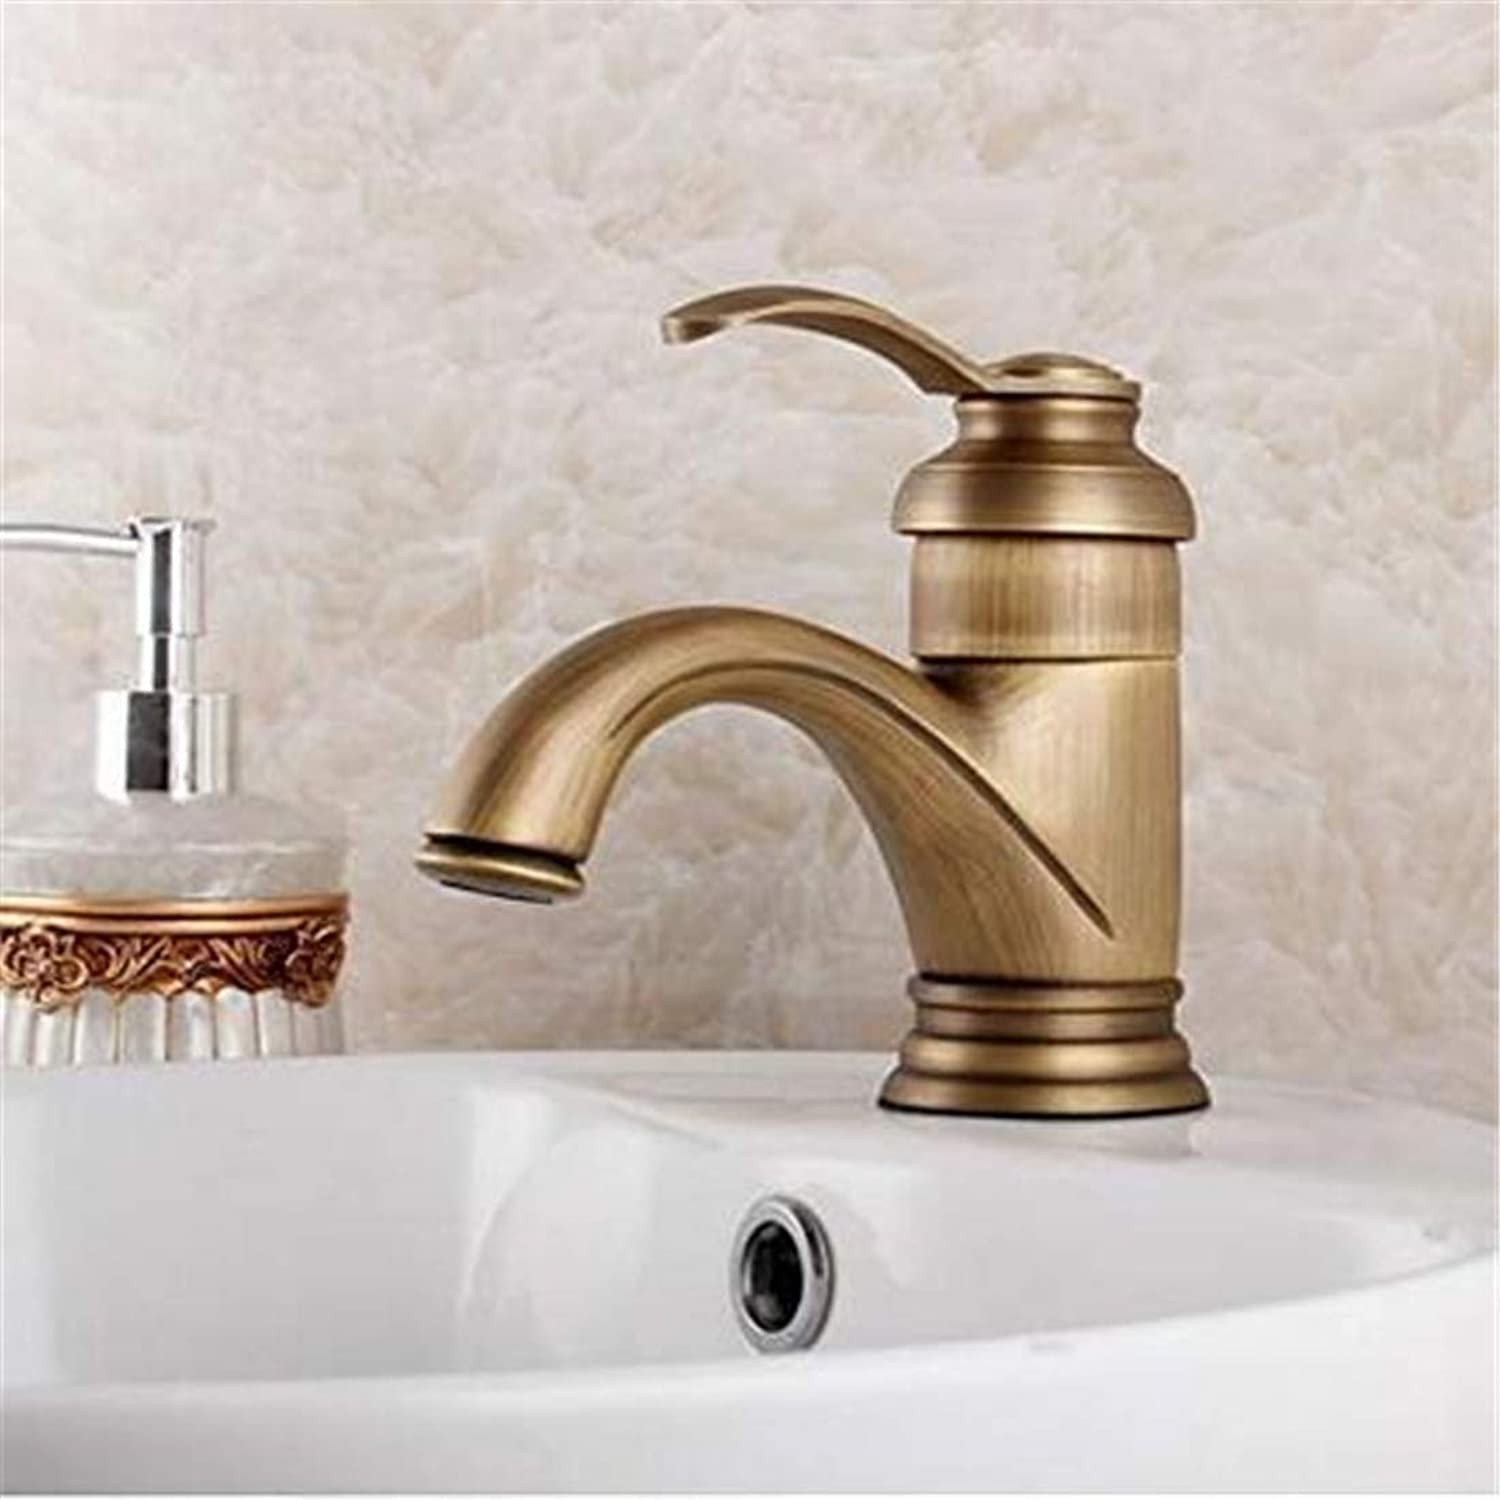 Kitchen Hot and Cold Water Brass Chrome Contemporary Concise Bathroom Faucet Antique Bronze Finish Brass Basin Sink Faucet Single Handle Water Tap